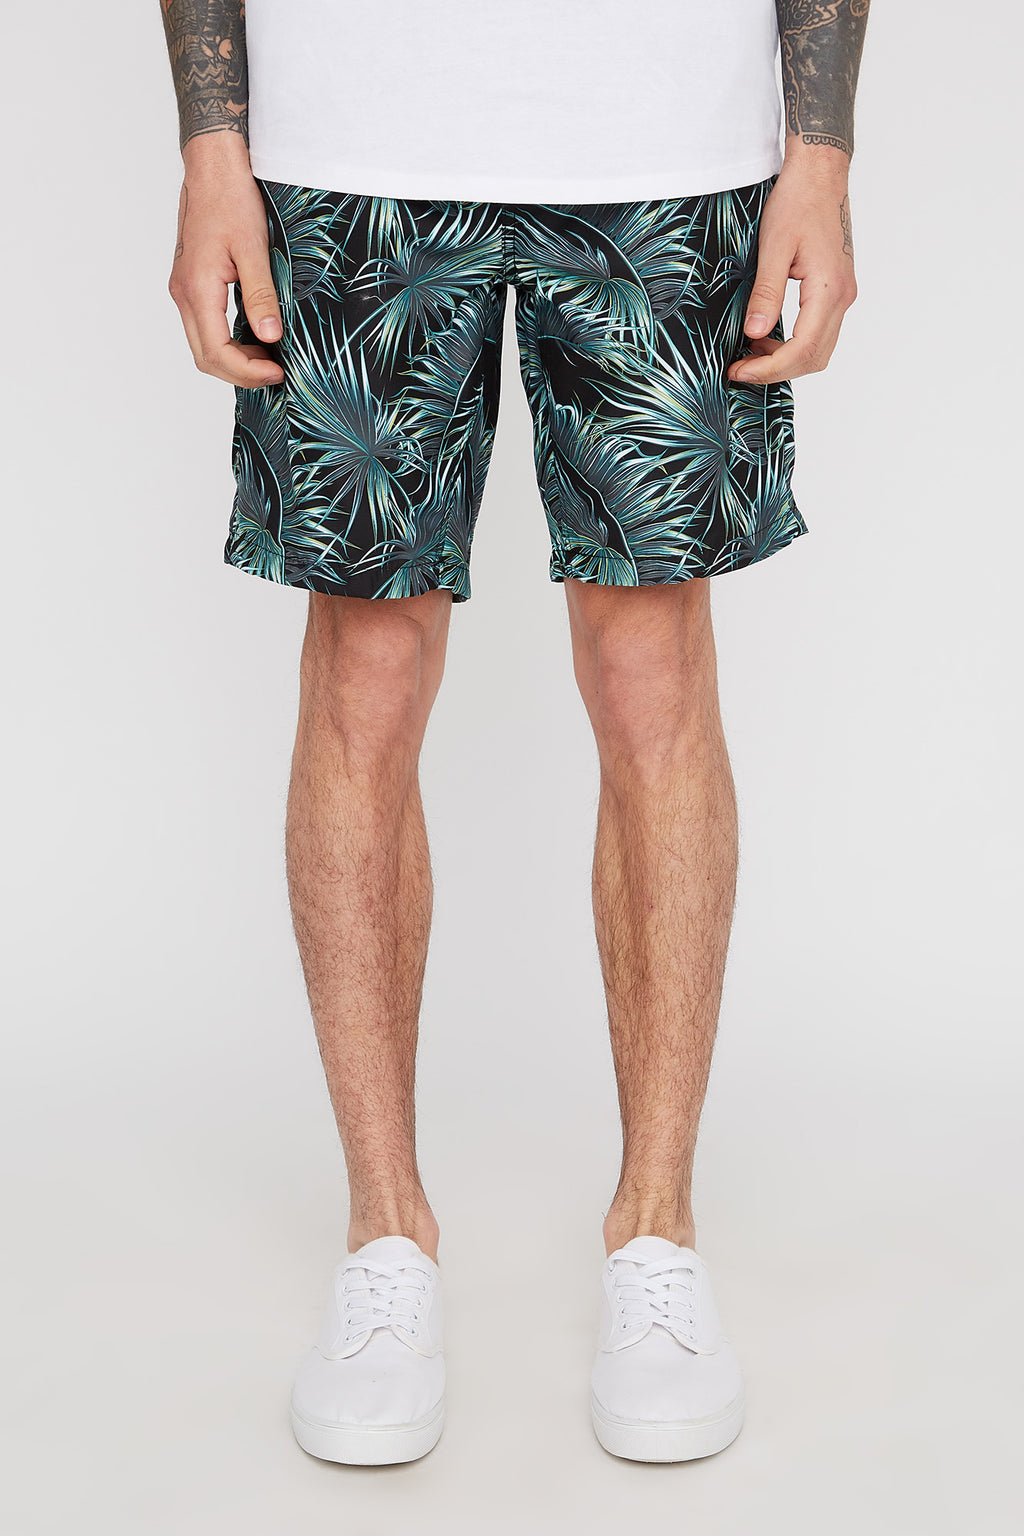 West49 Mens Graphic Hot Tub Shorts